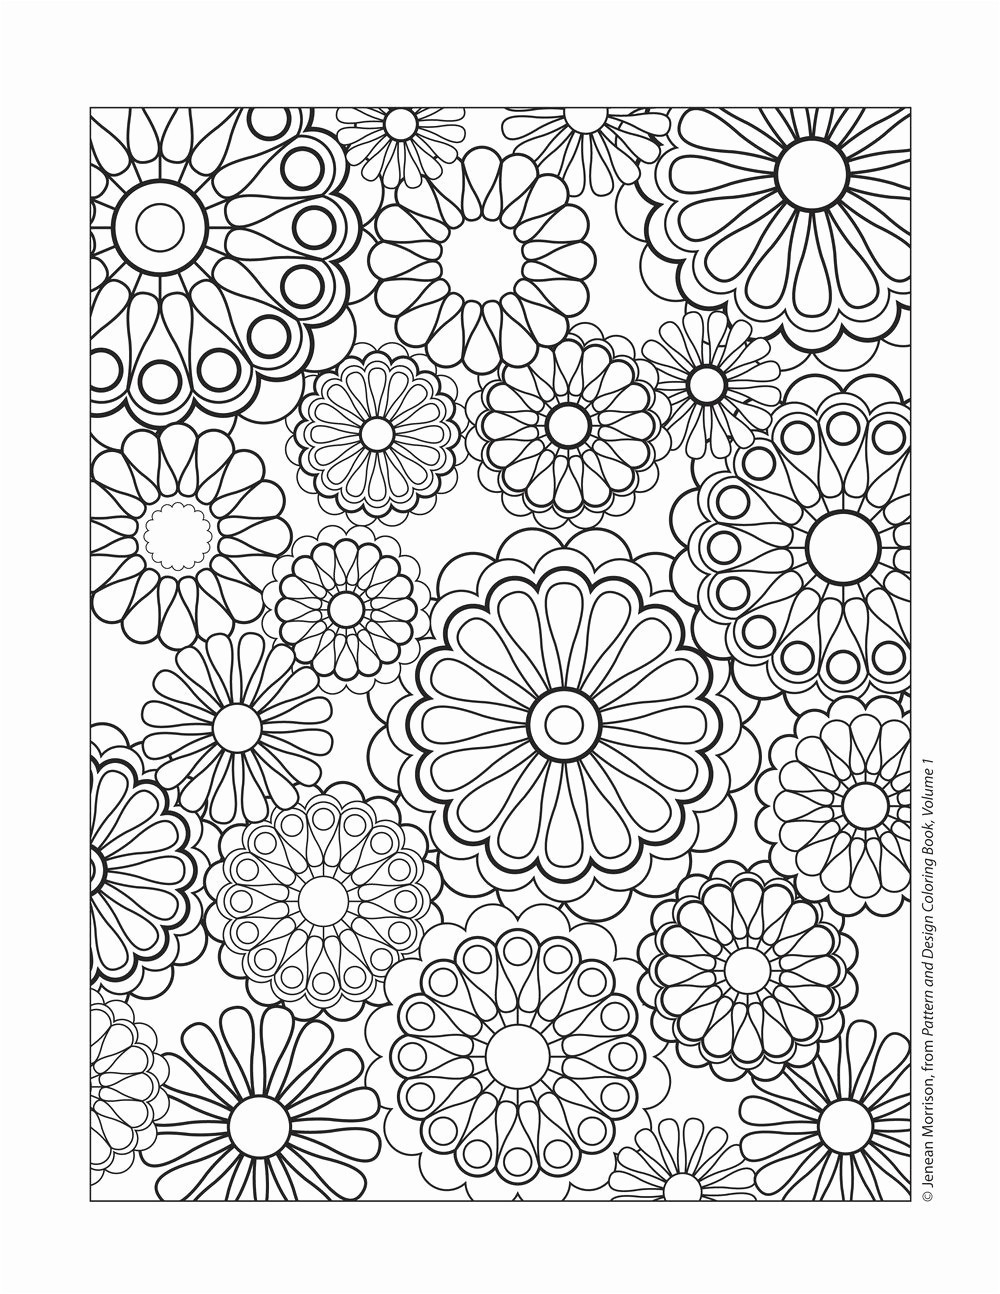 coloring pages online game Download-Coloring Pages Games Lovely Coloring Book 0d Modokom Cool Coloringcoloring Book For Adults 14-a